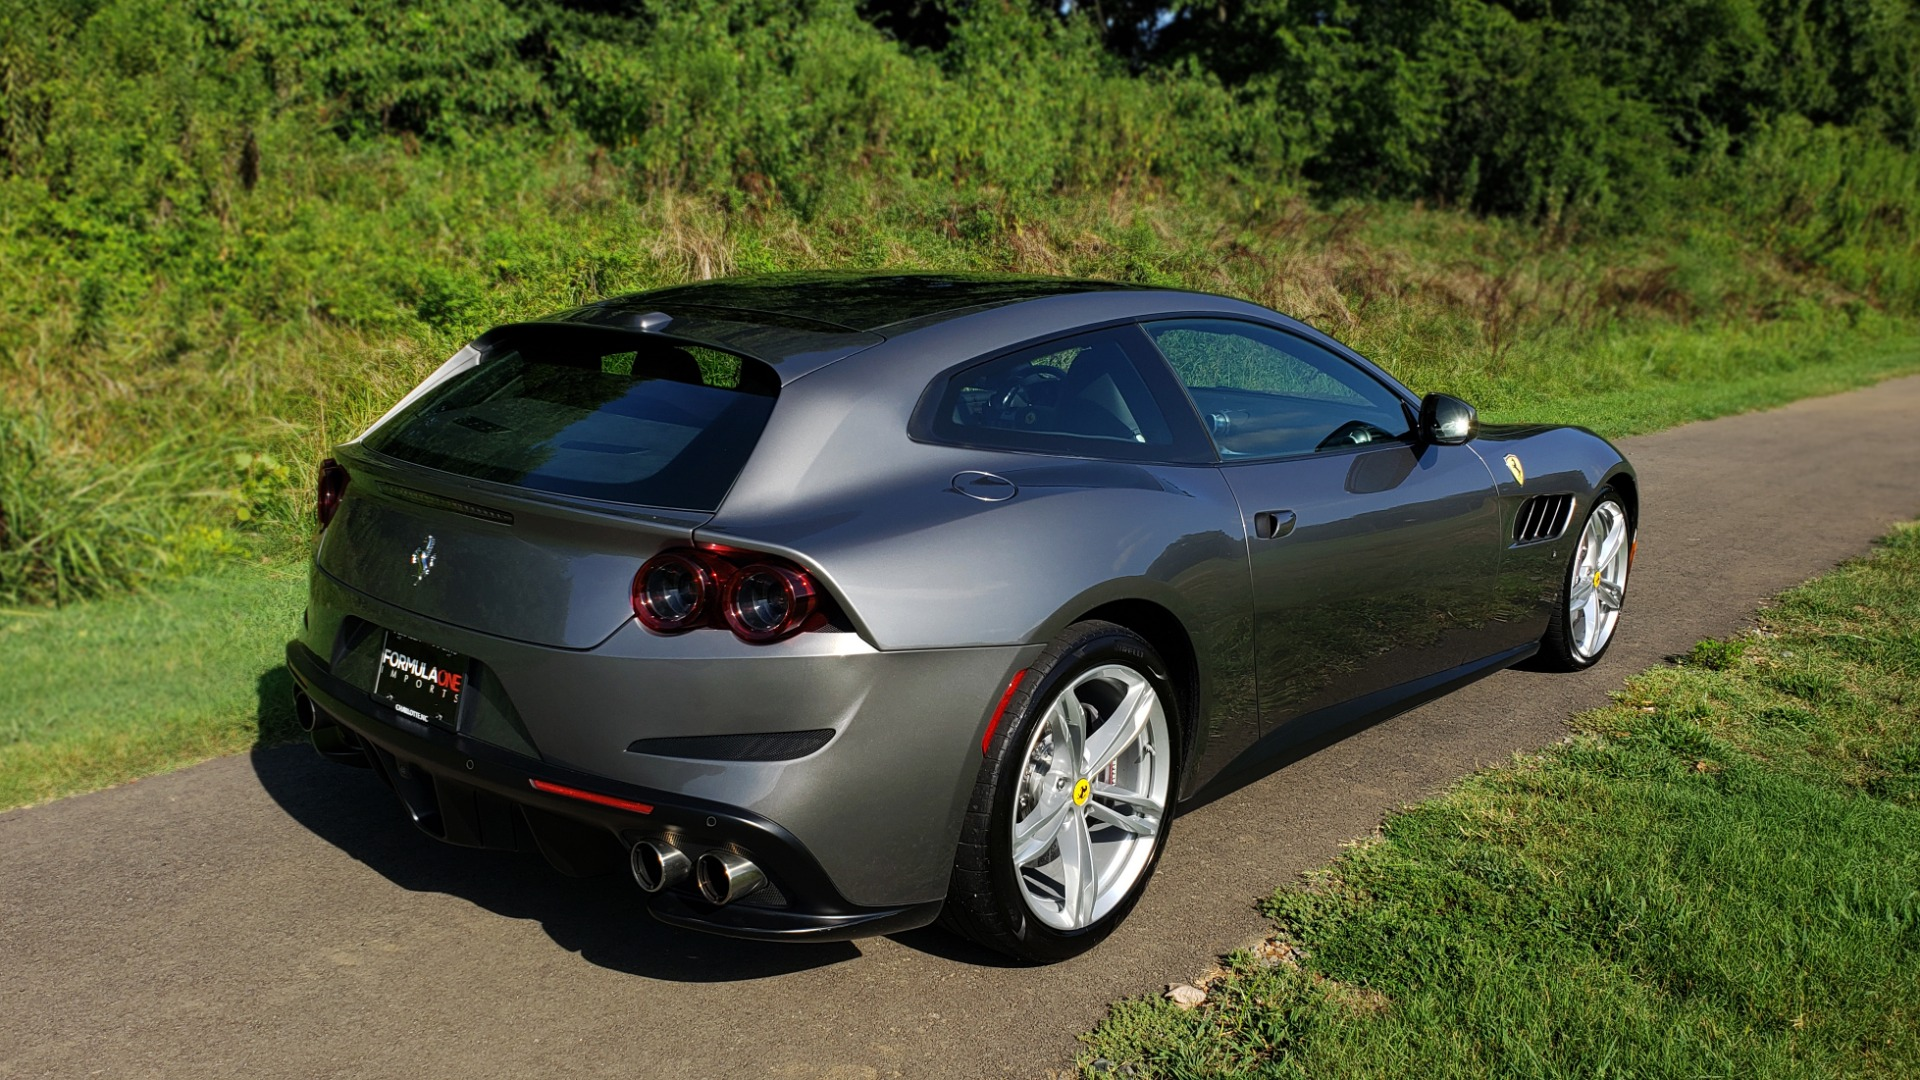 Used 2017 Ferrari GTC4 LUSSO AWD / PANO-ROOF / APPLE CAR PLAY / SUSP LIFT / JBL SOUND for sale $188,999 at Formula Imports in Charlotte NC 28227 7